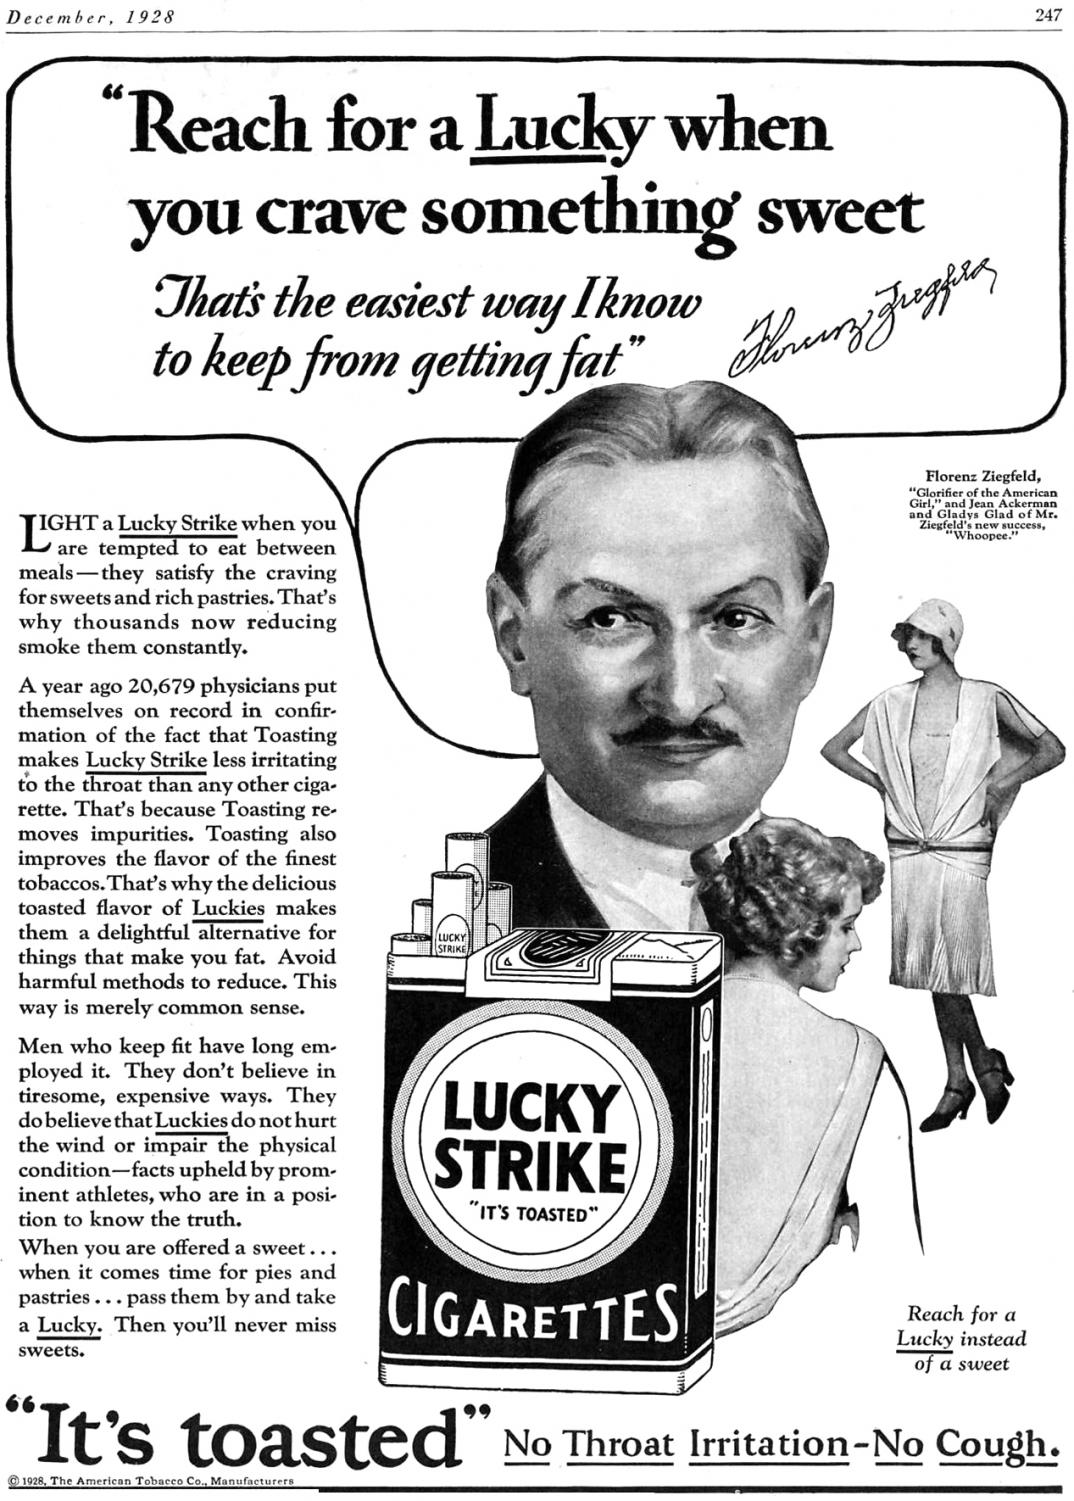 A Lucky Strike cigarette dieting ad that claims that cigarettes will curb sweet cravings